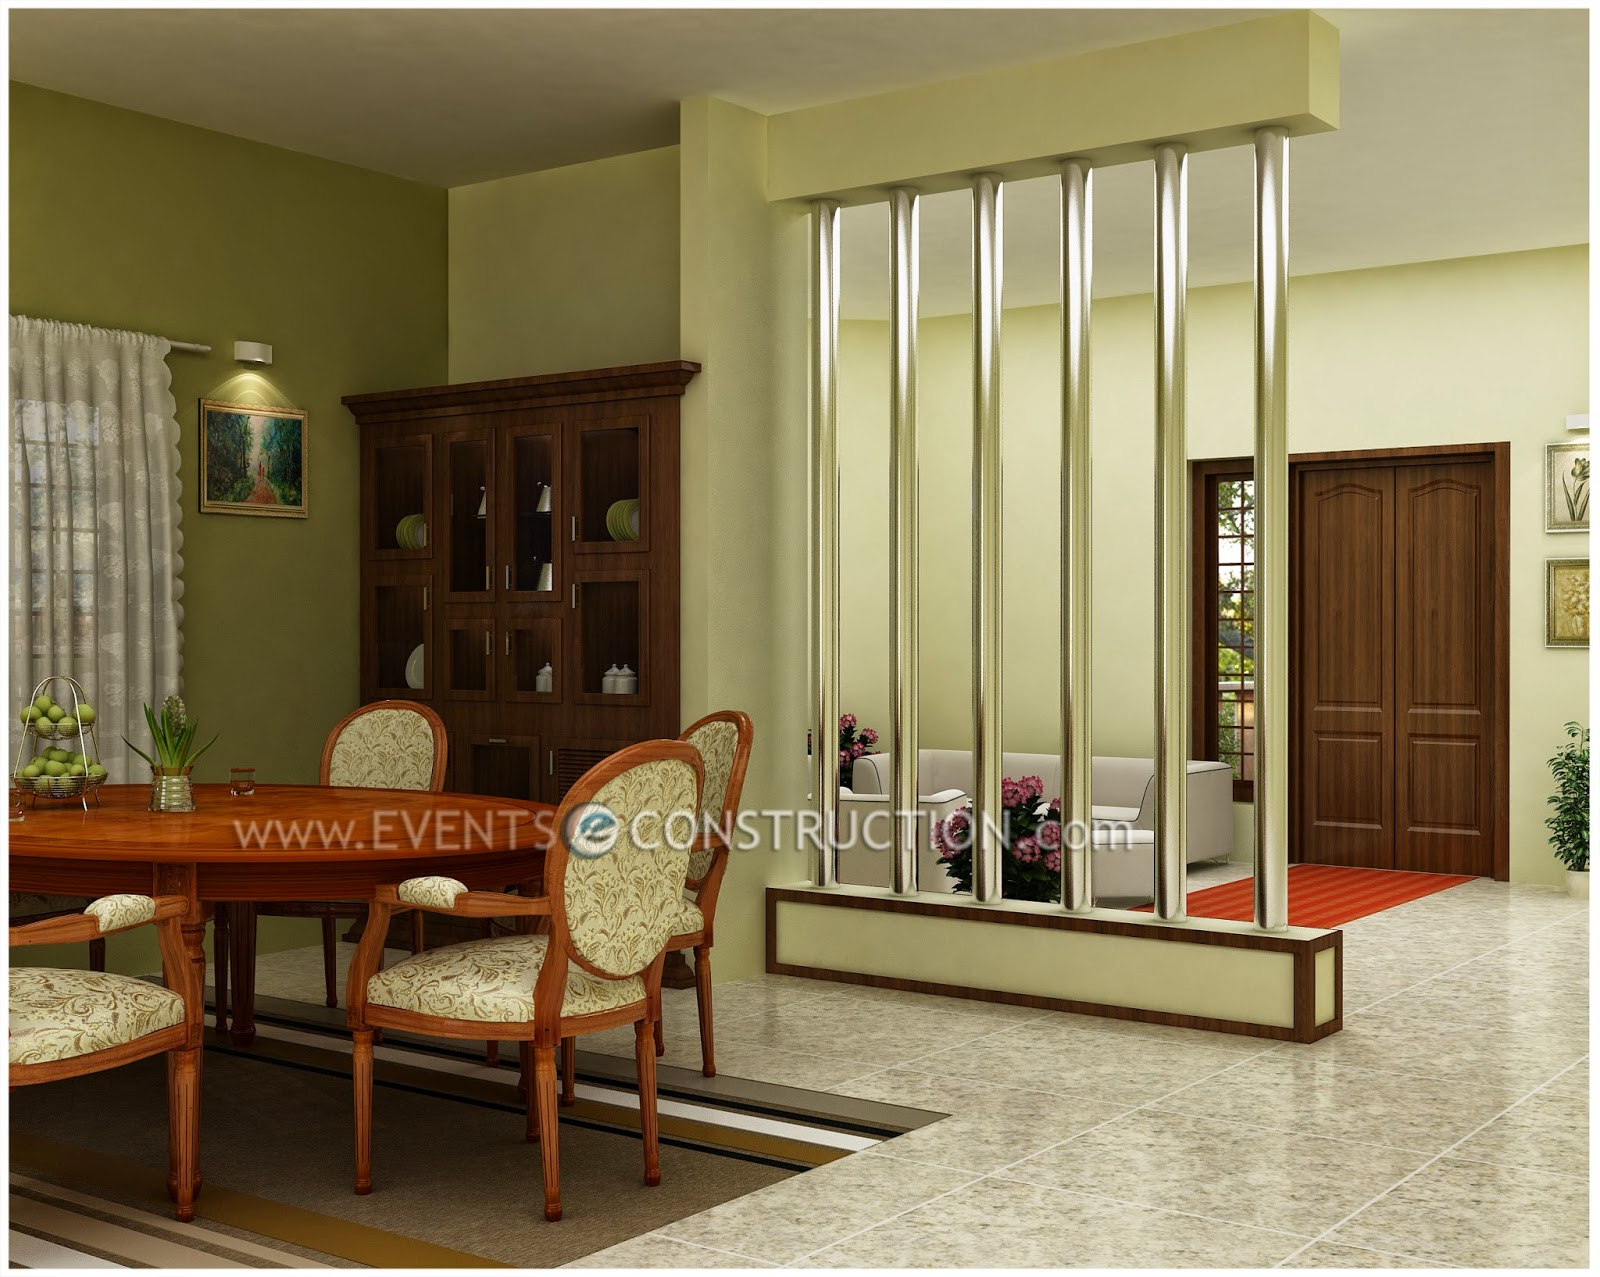 Evens construction pvt ltd living area and dining room for Living room divider designs